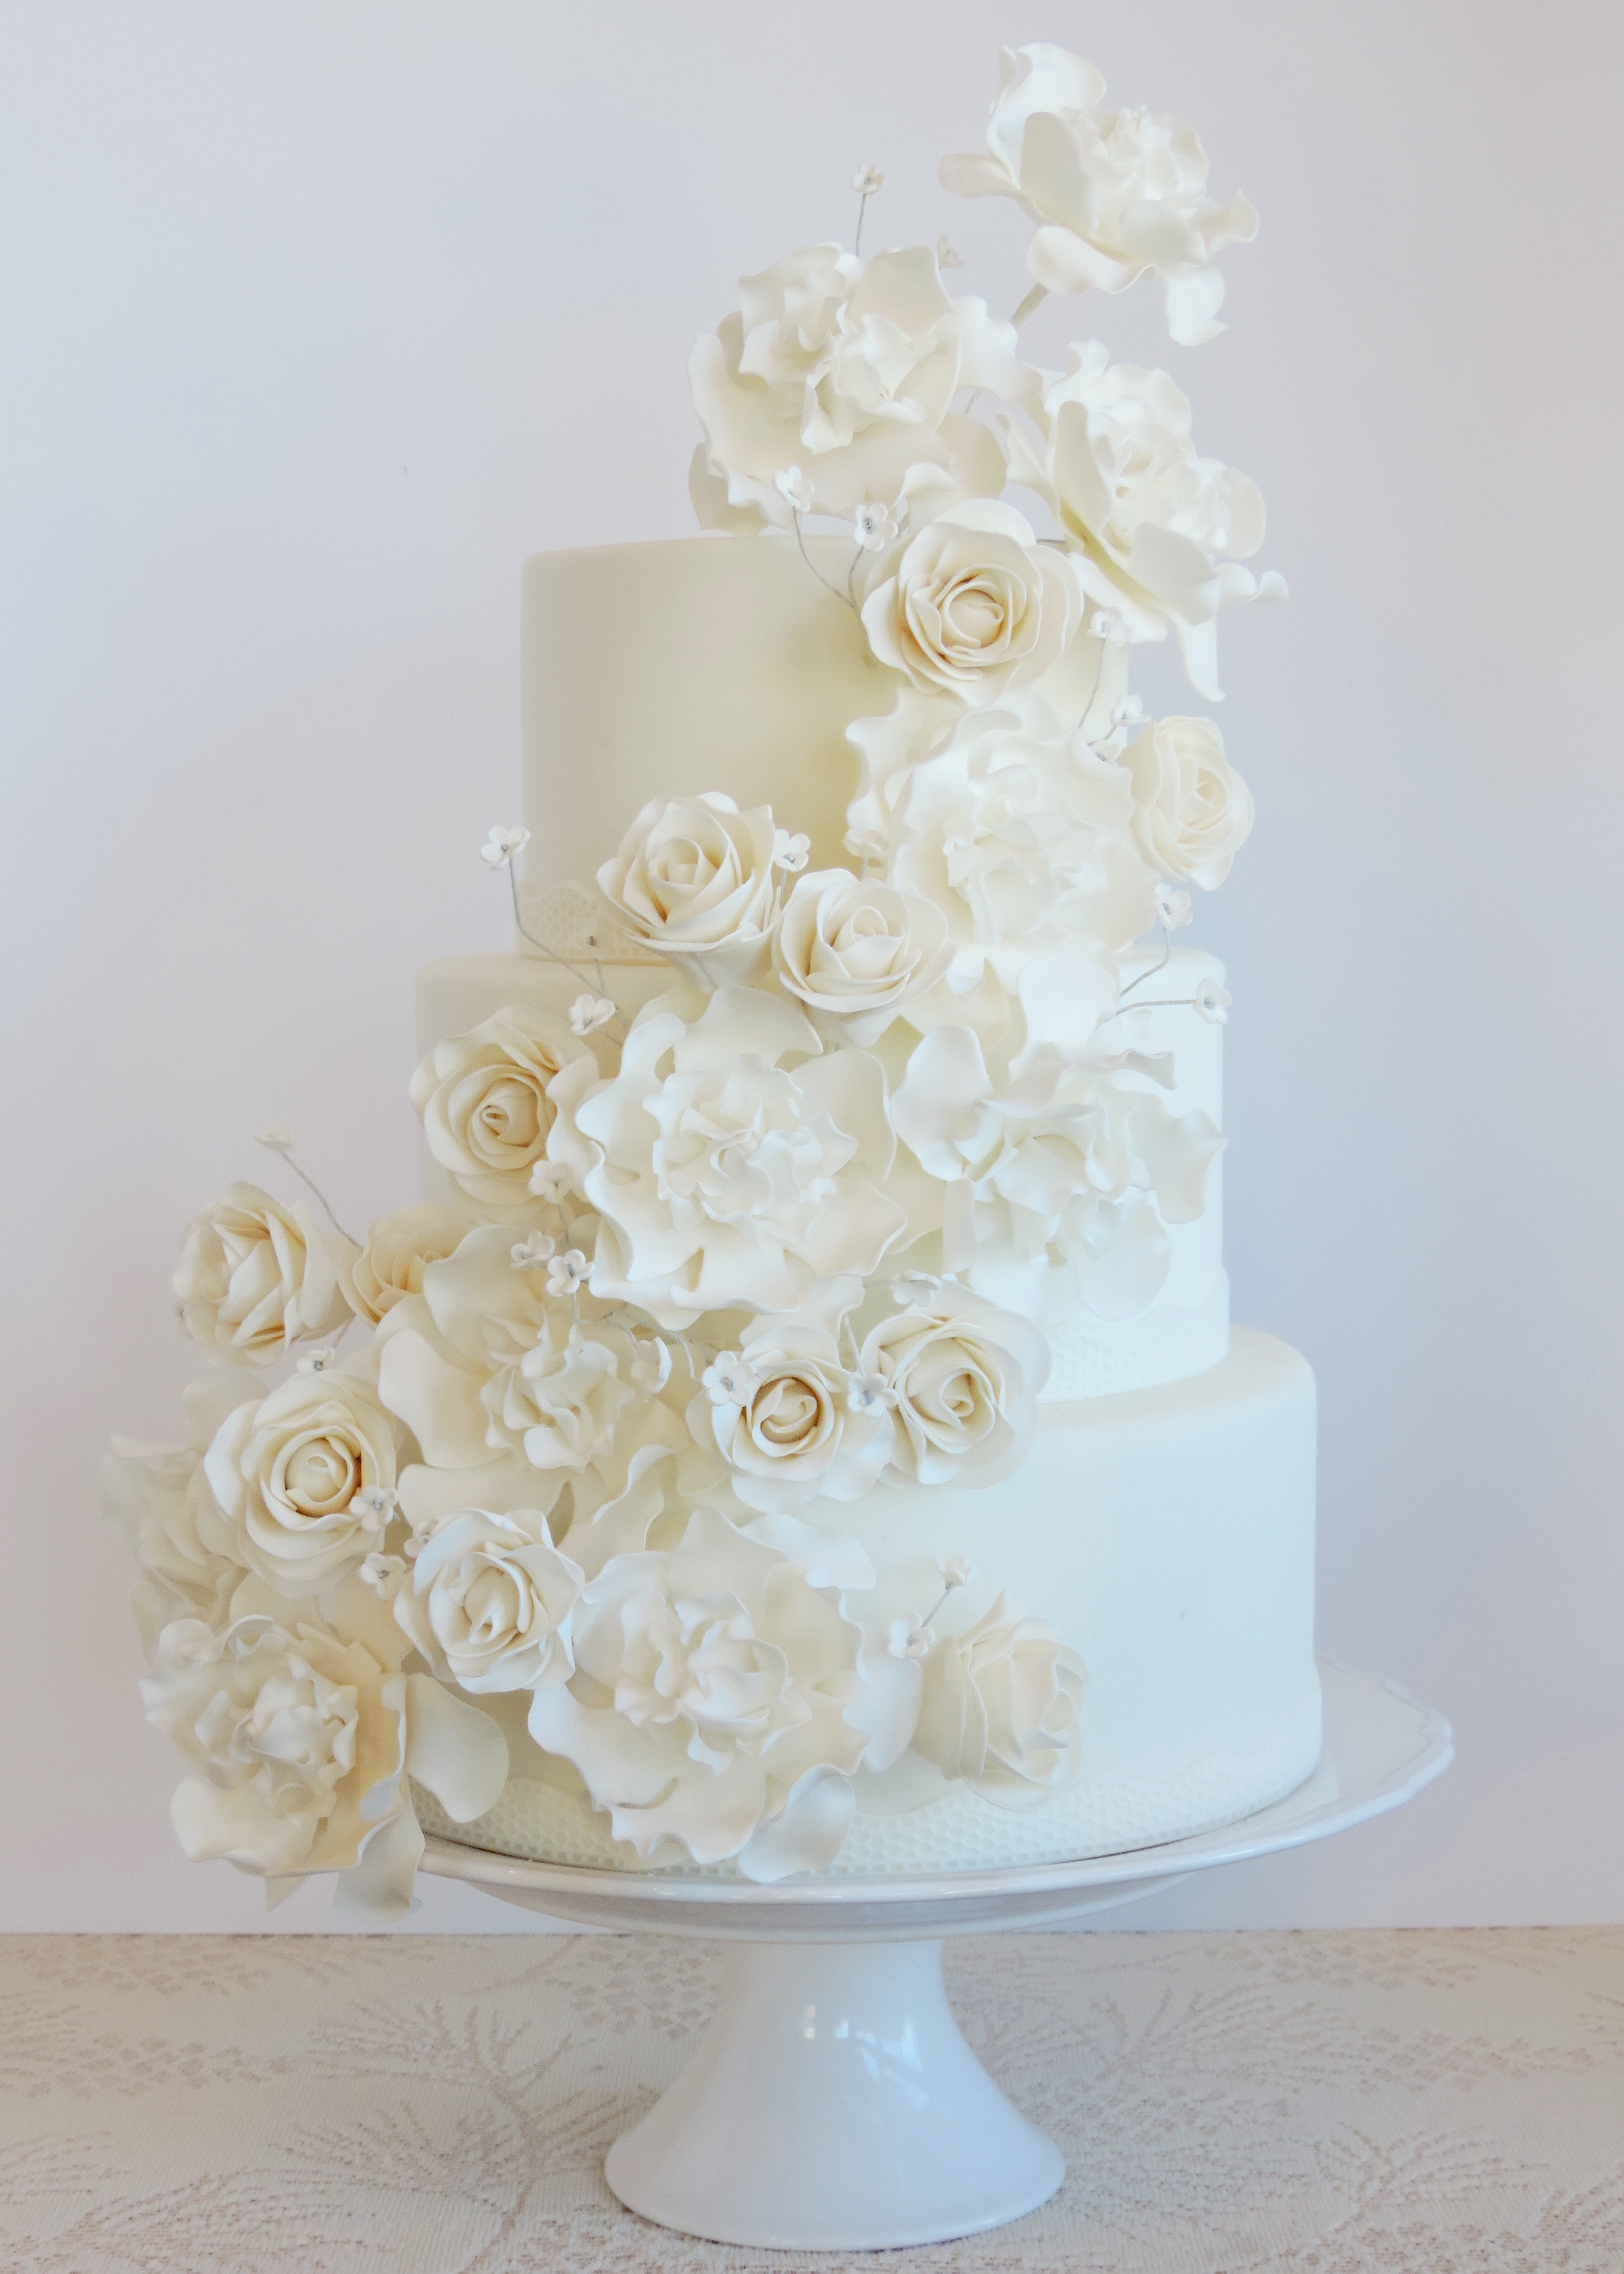 Gumpaste Flowers For Wedding Cakes  Gum Paste Flowers – Meloda